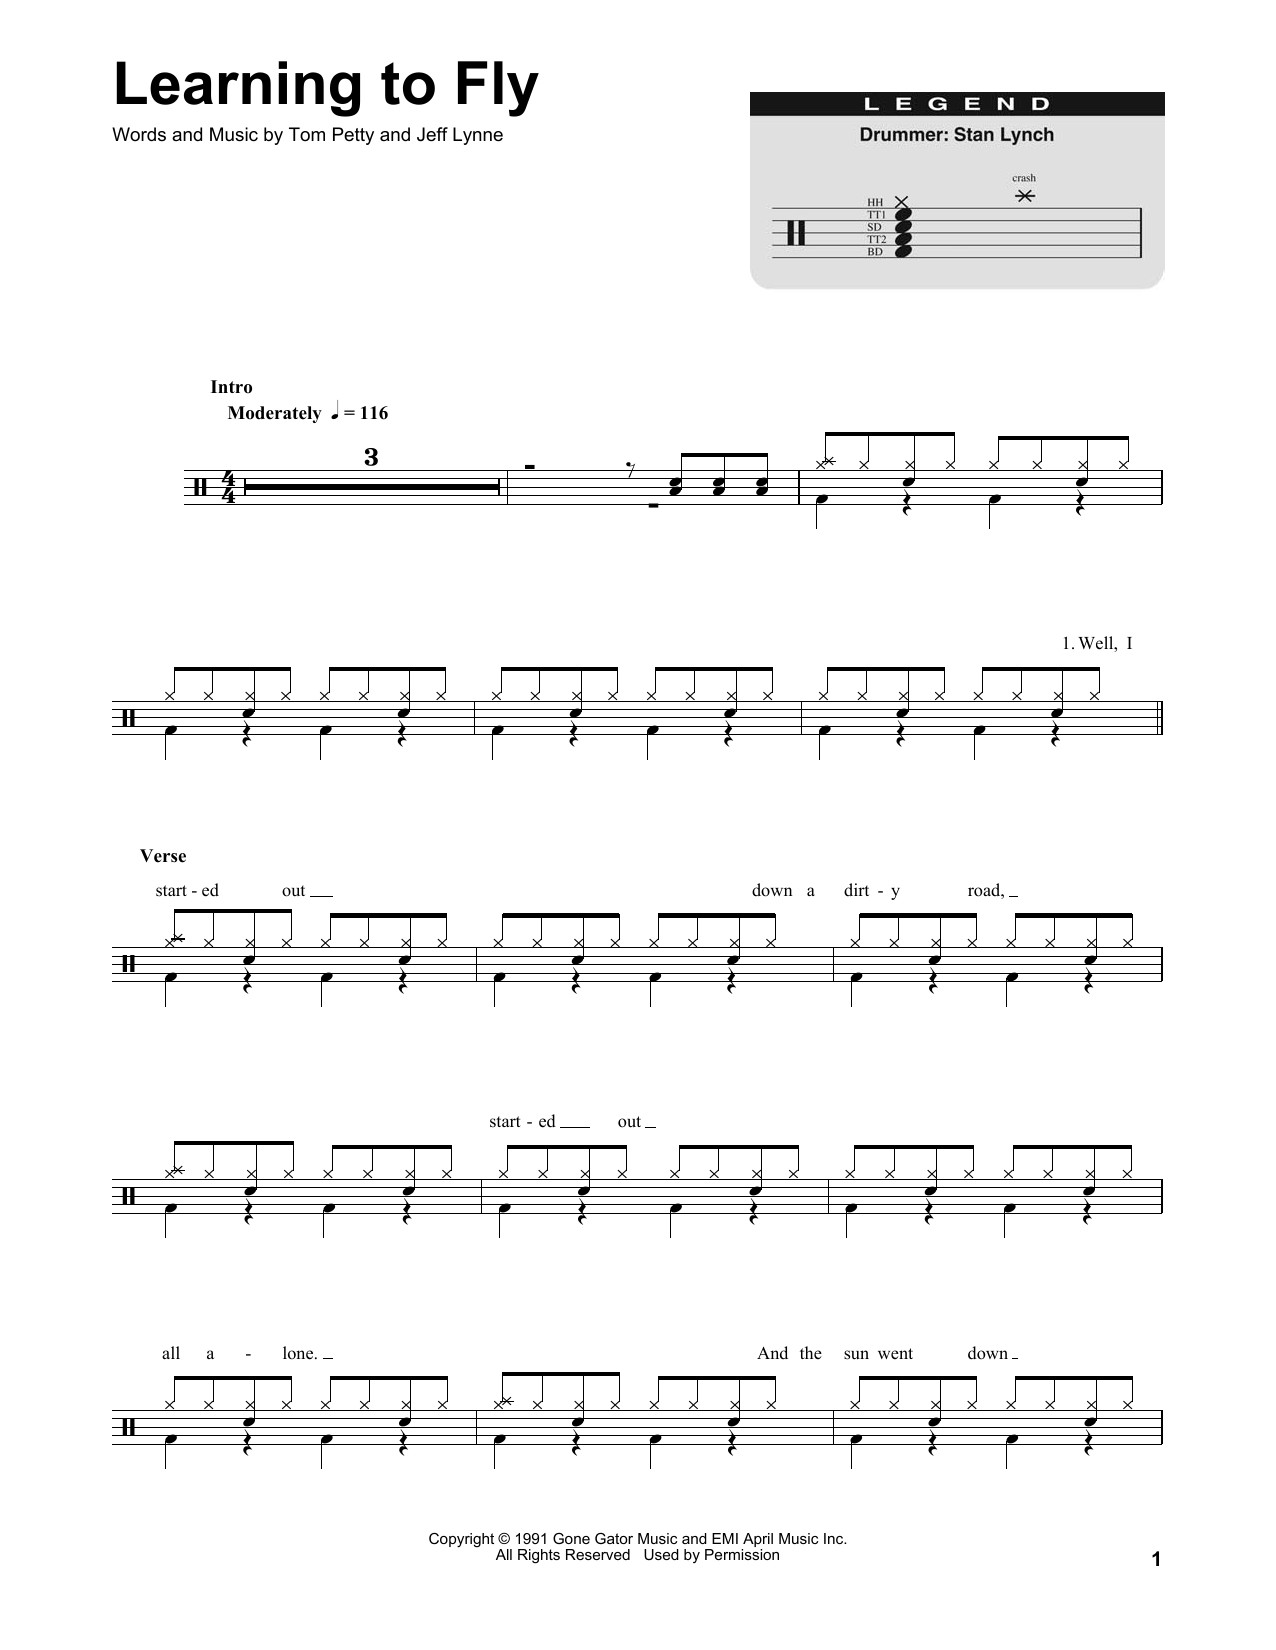 Learning To Fly (Drums Transcription)